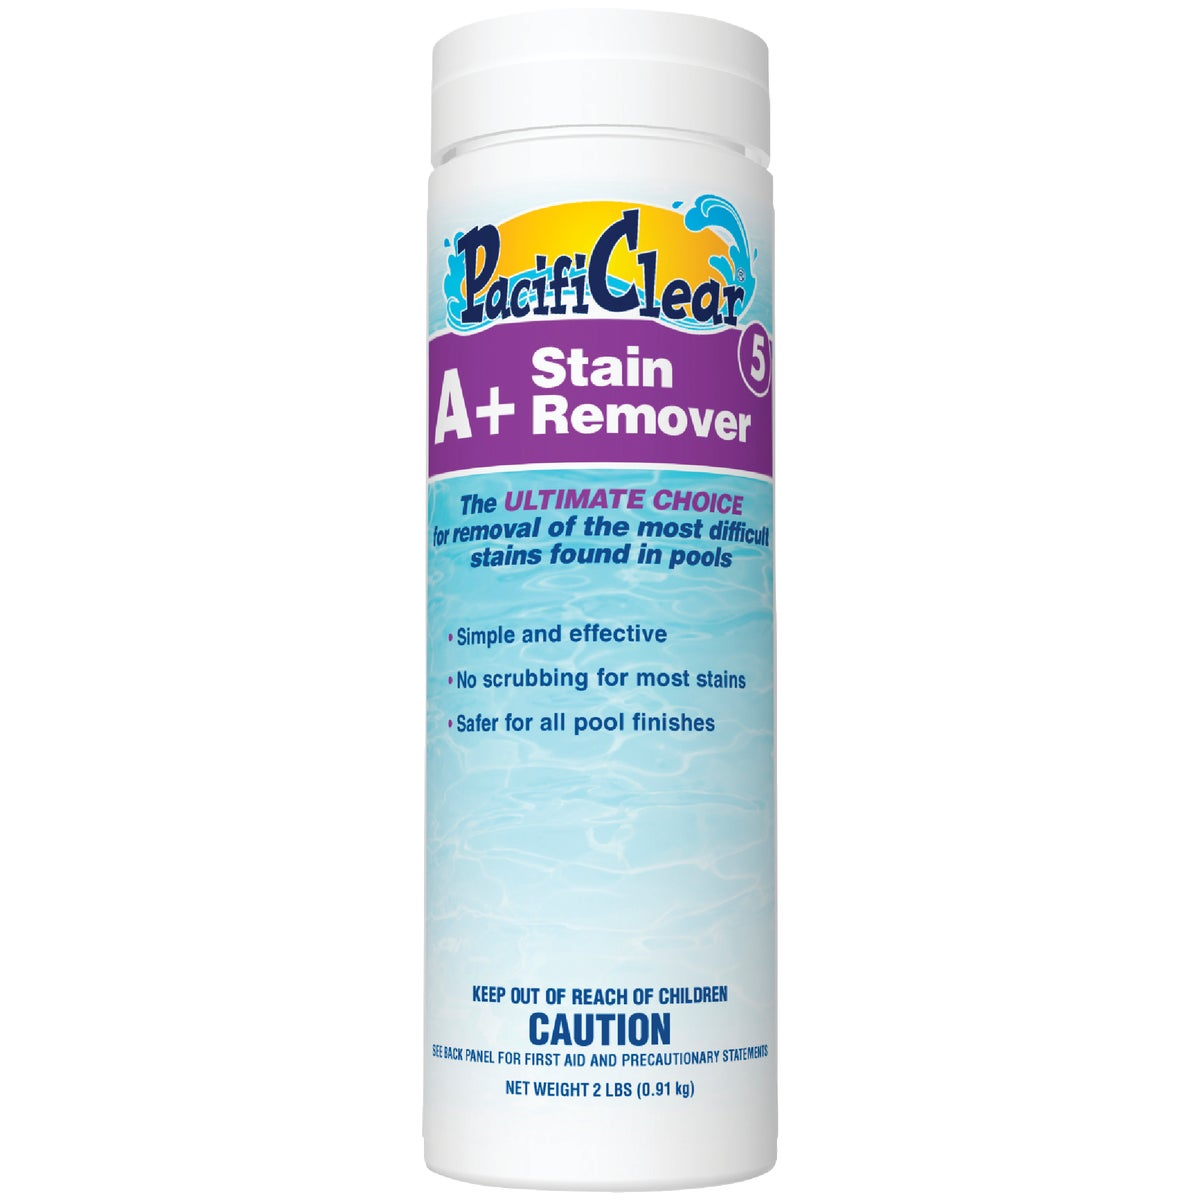 2LB A+ STAIN REMOVER